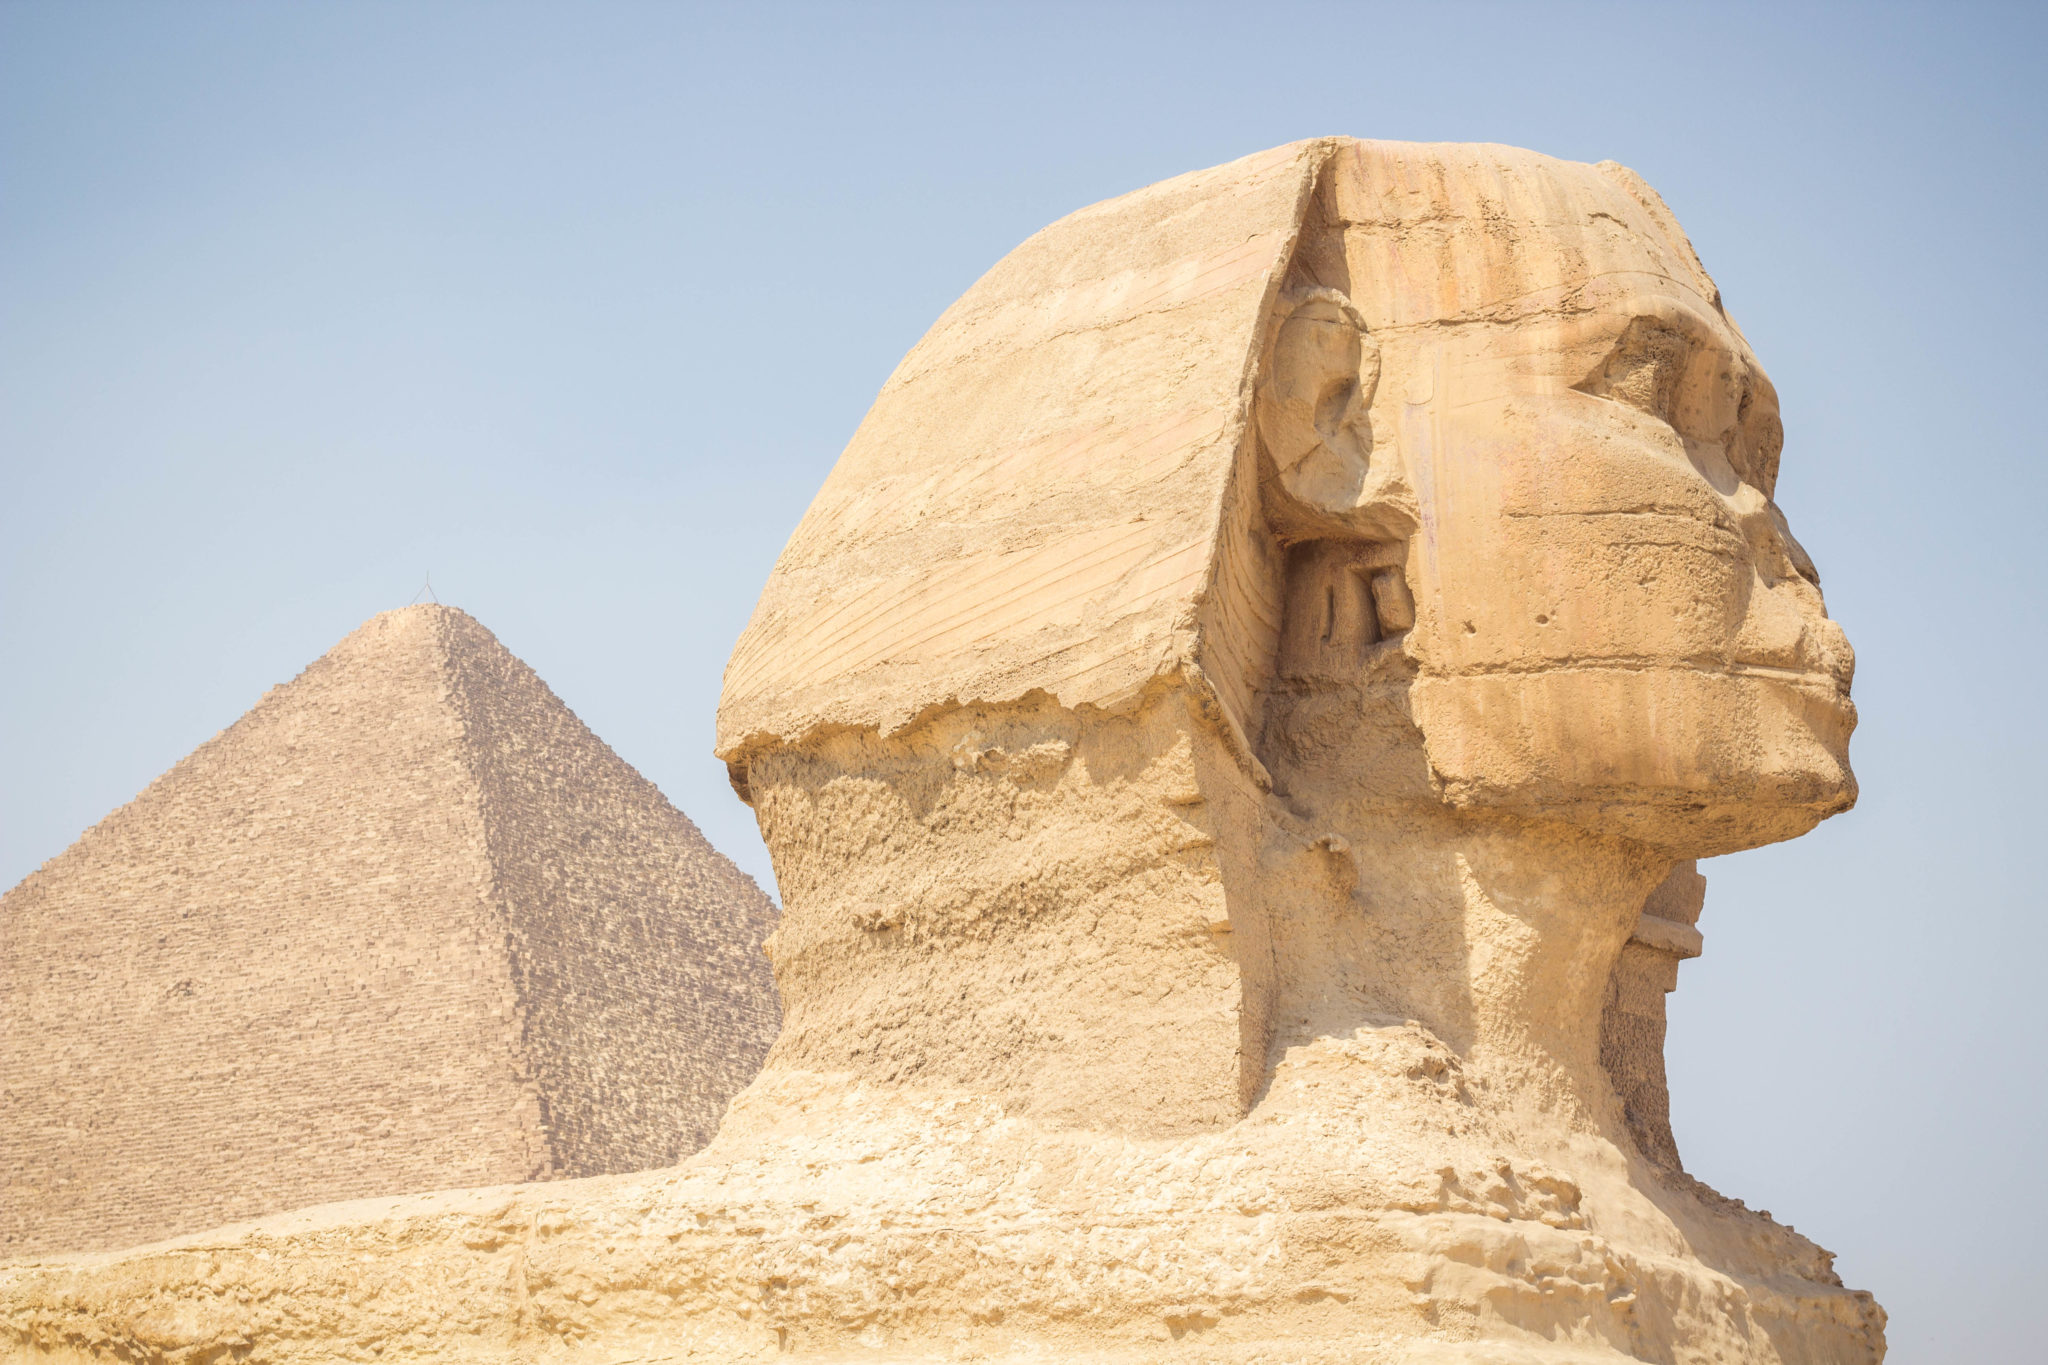 Sphinx in Giza, Egypt